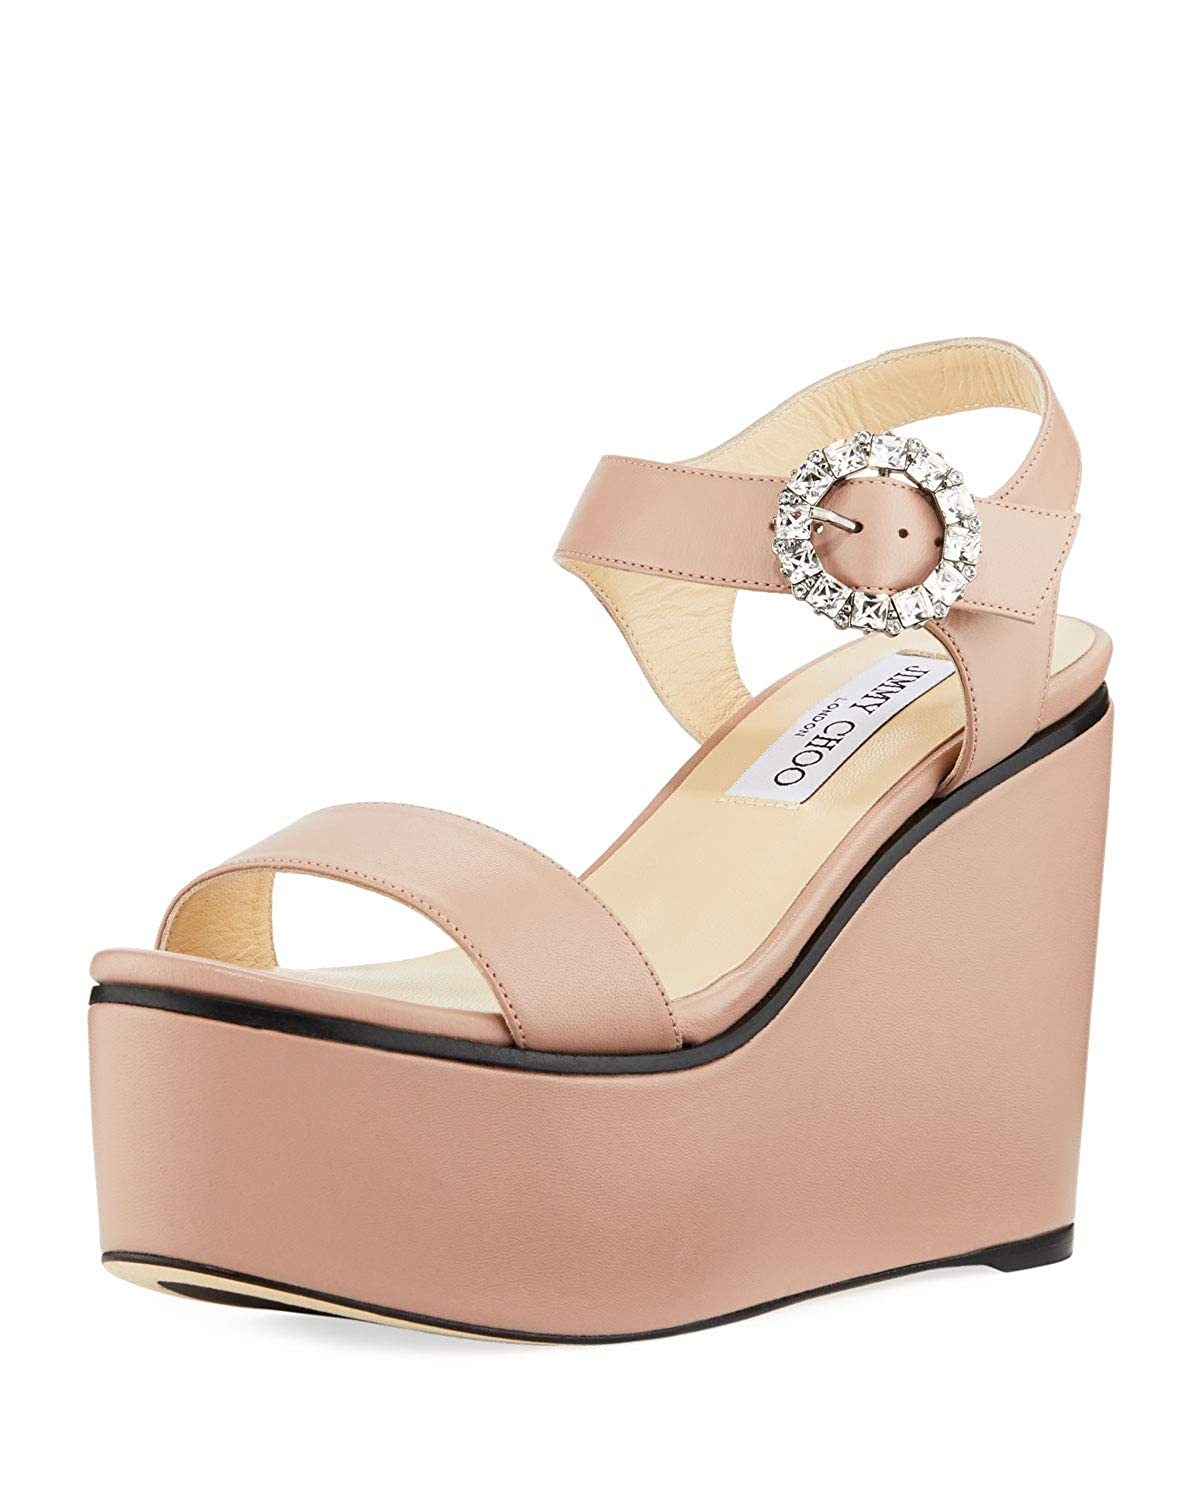 99c8e4579dc Amazon.com | JIMMY CHOO Nylah Leather Wedge Platform Sandals 40 Beige |  Platforms & Wedges